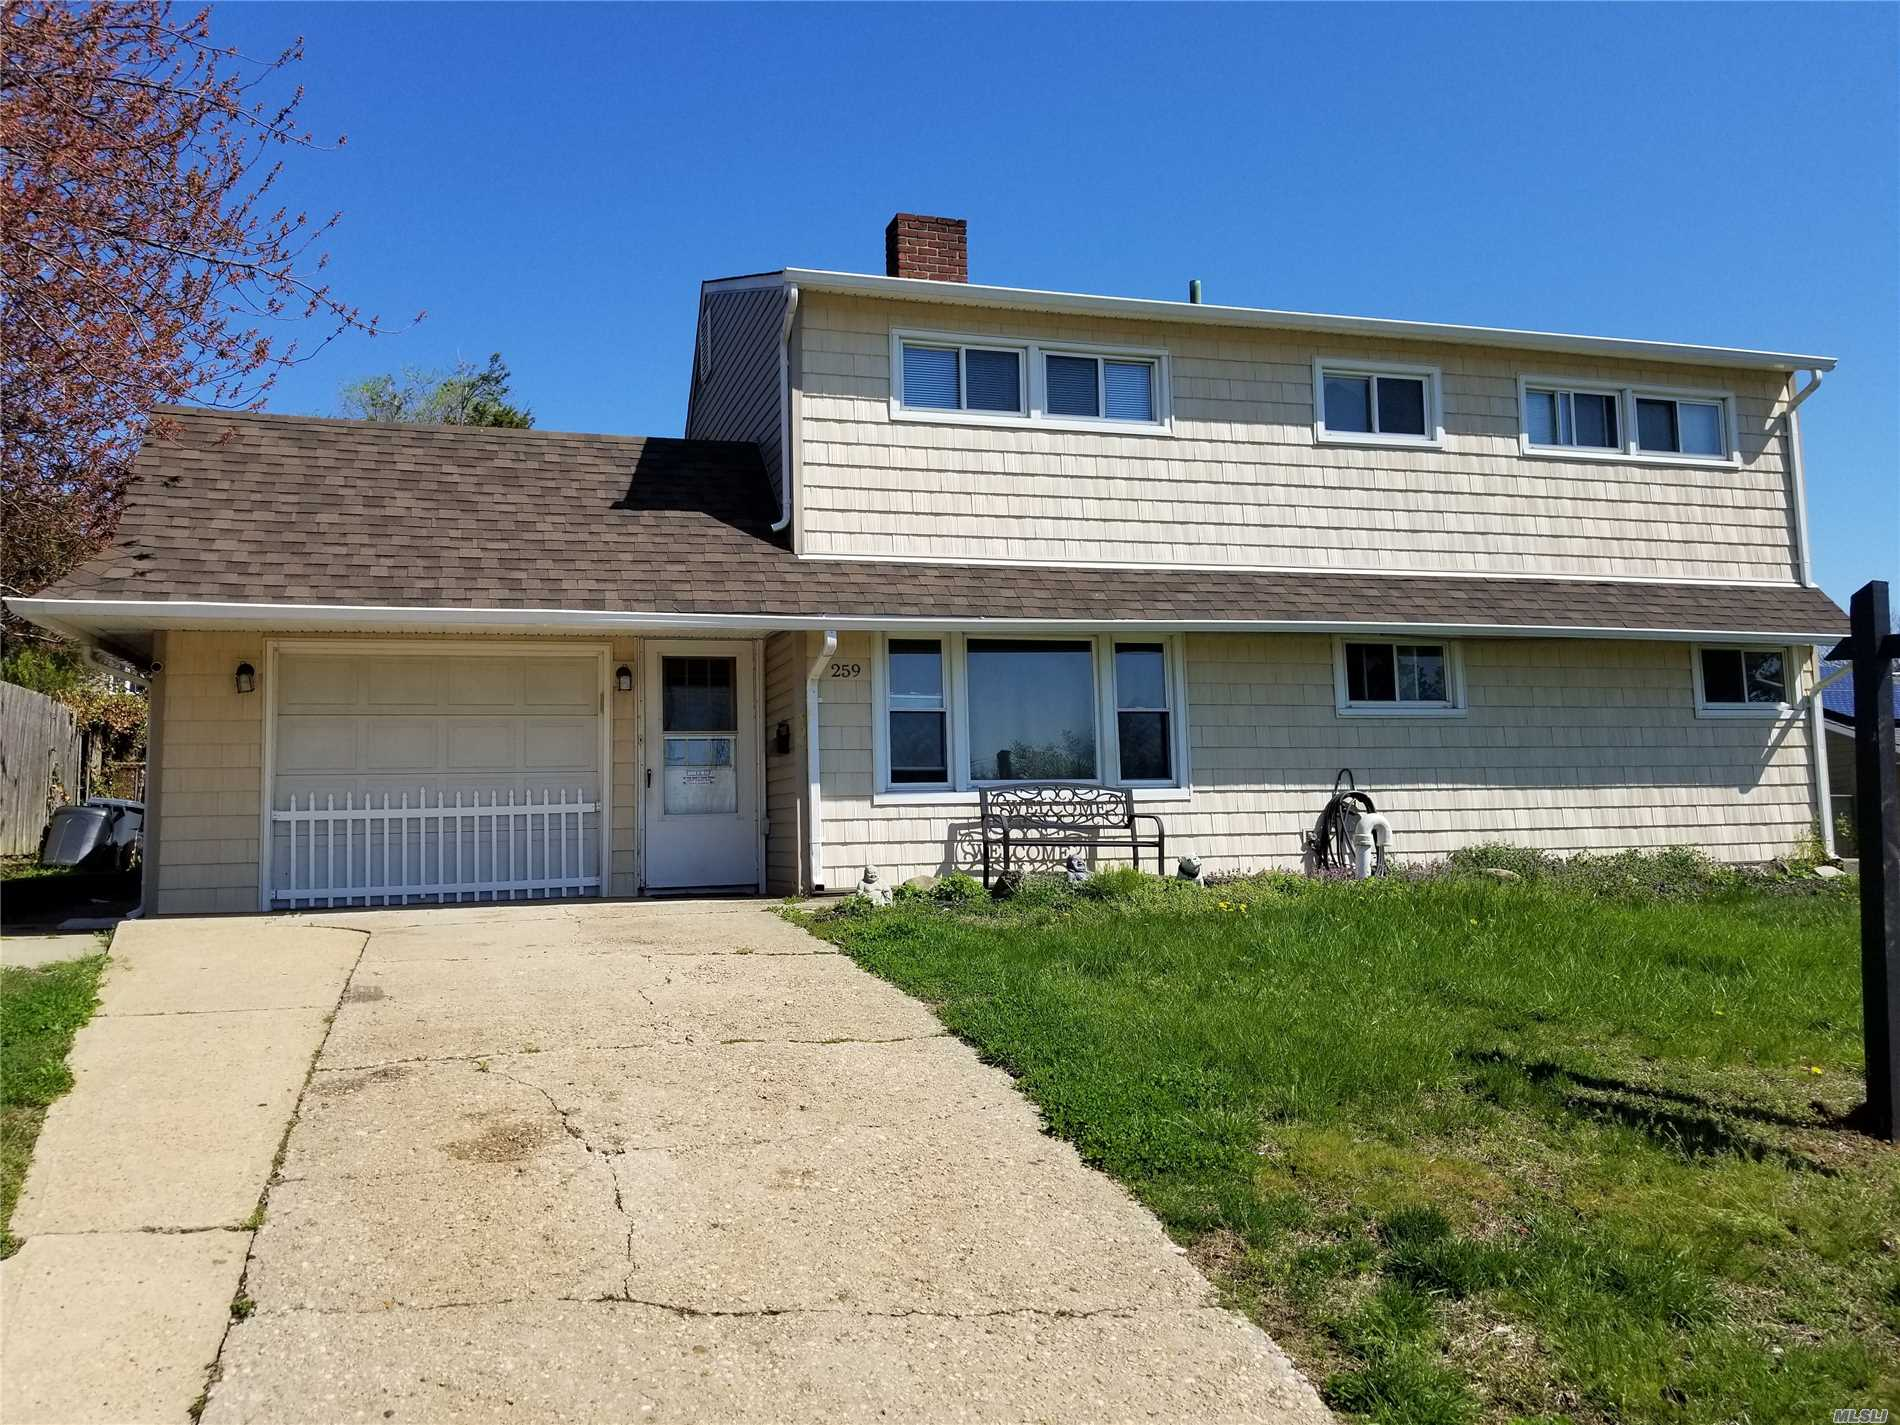 THIS HOME IN MID BLOCK LOCATION IS BEING SOLD AS IS WITH NO REPRESENTATION WHATSOEVER!!.PERFECT FOR CONTRACTOR, HANDYMAN, BUILDER /INVESTOR.NEW ARCH.ROOF AND CEDAR IMPRESSIONS IN THE FRONT.ABOVE GROUND OIL TANK.LOW TAXES!!